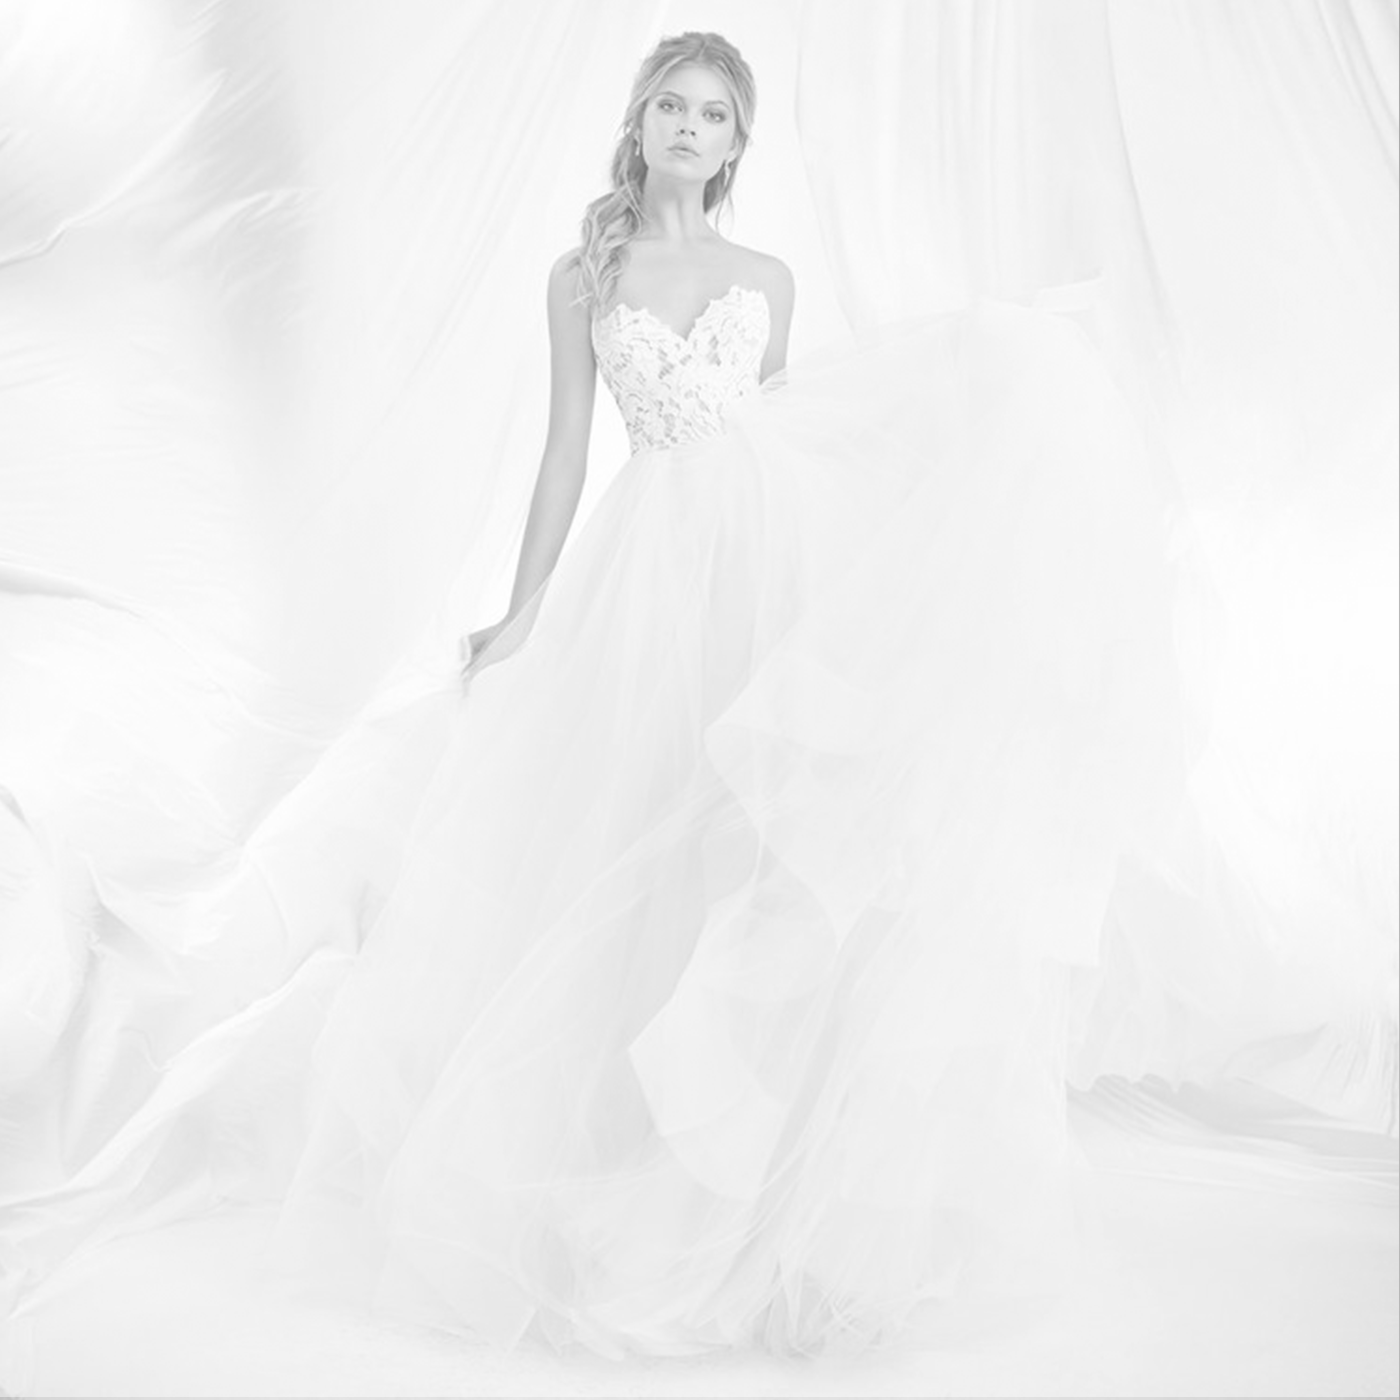 Blush by Hayley Paige - All the pizzazz of a signature Hayley Paige gown, but at an accessible price point -- what's not to love? Designed by Hayley Paige, the Blush bridal collection is characterized by casual elegance and femininity.starting at $2,000